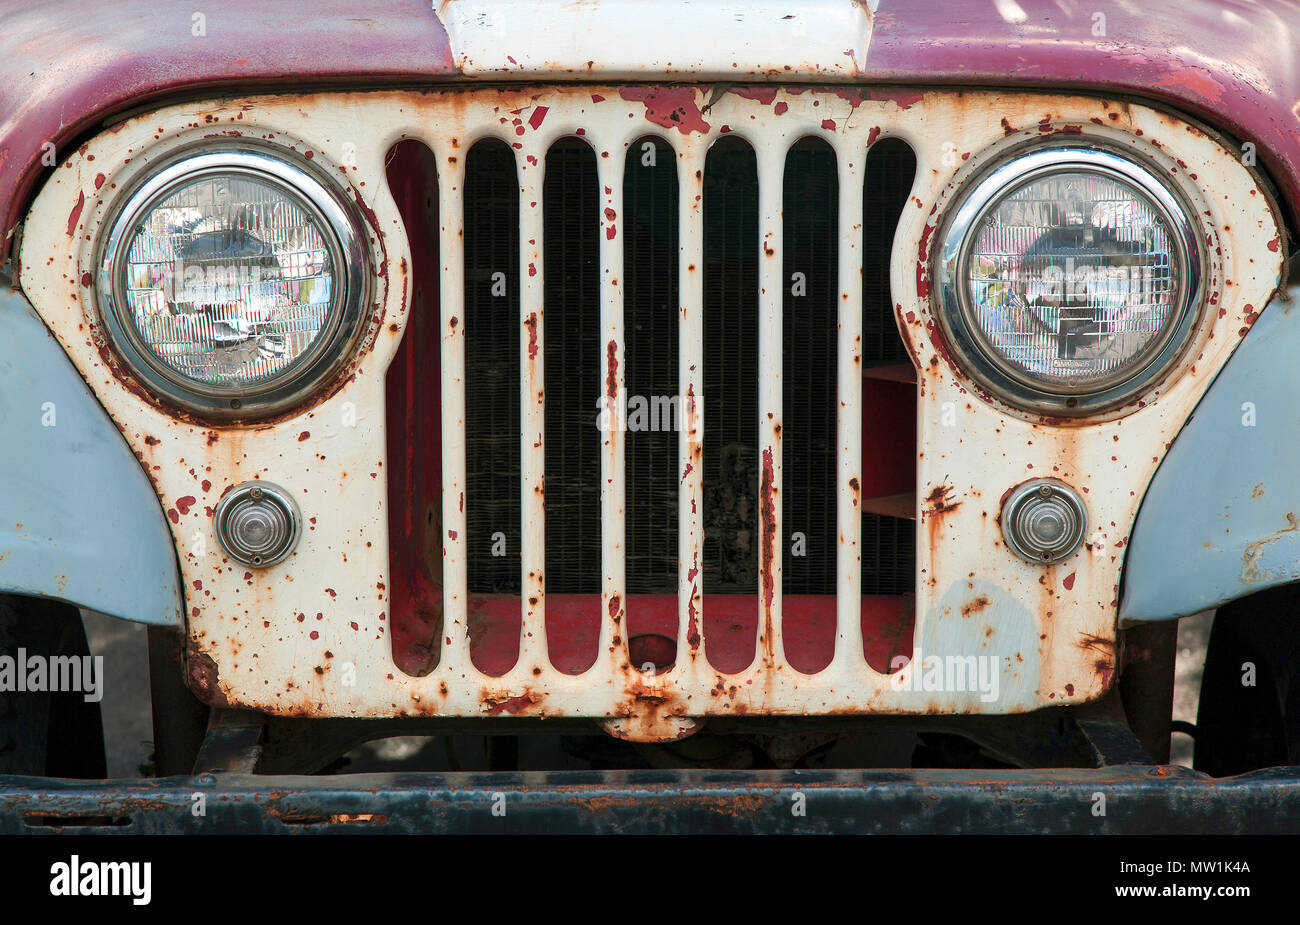 Oldtimer, Jeep, 1940-1950s, radiator grill with lamps, car cemetery at Ystafell Transportation Museum - Stock Image